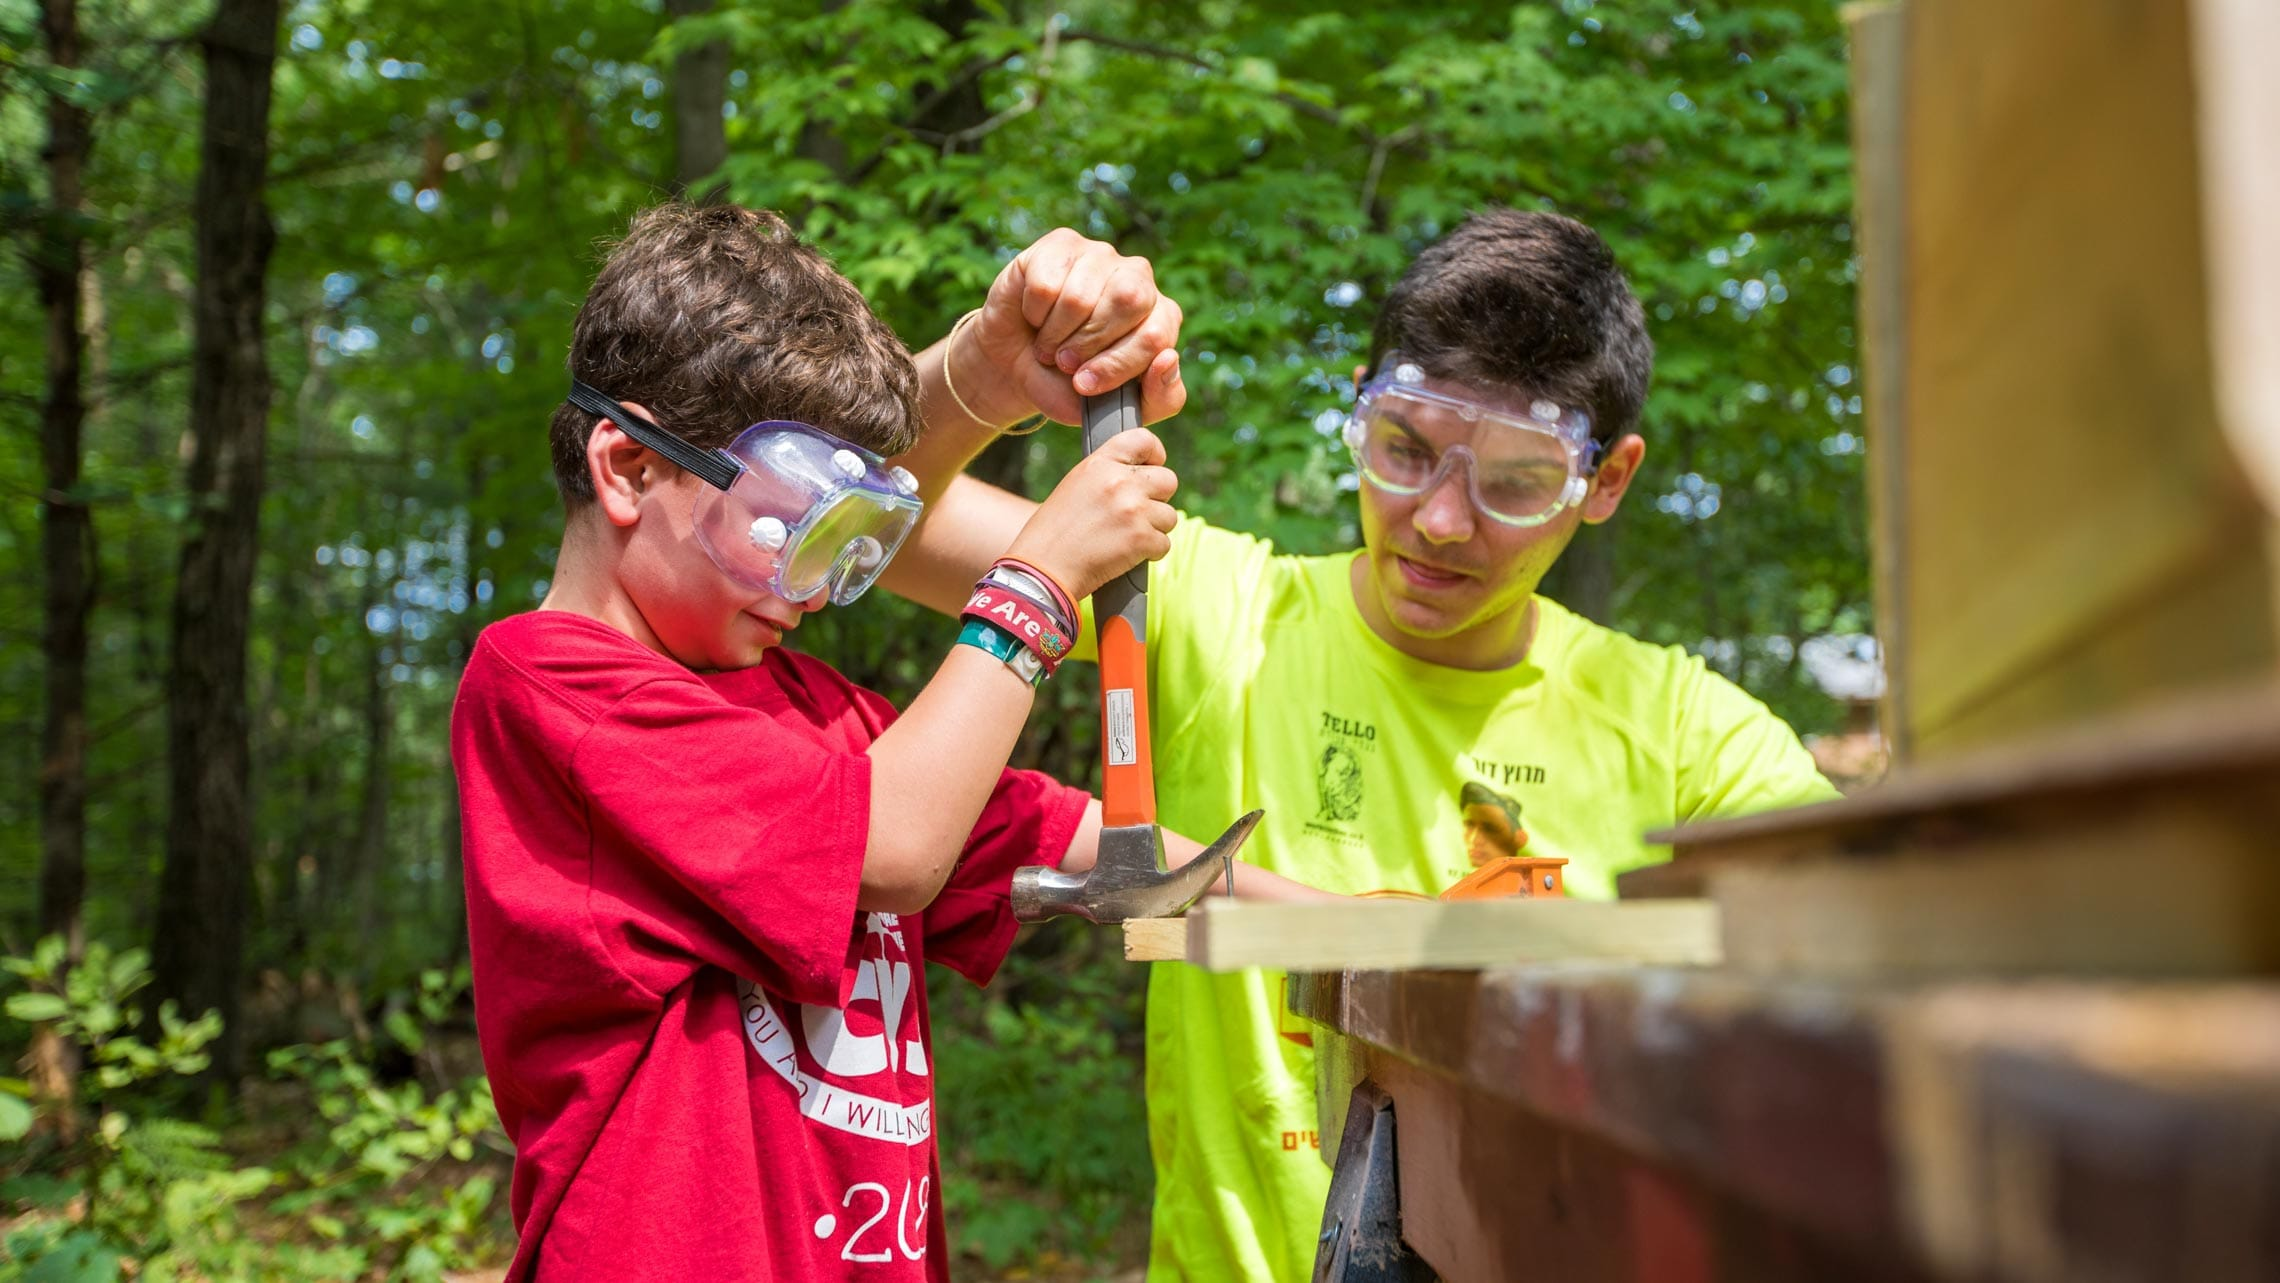 Young boy learning how to use a hammer in woodworking activity